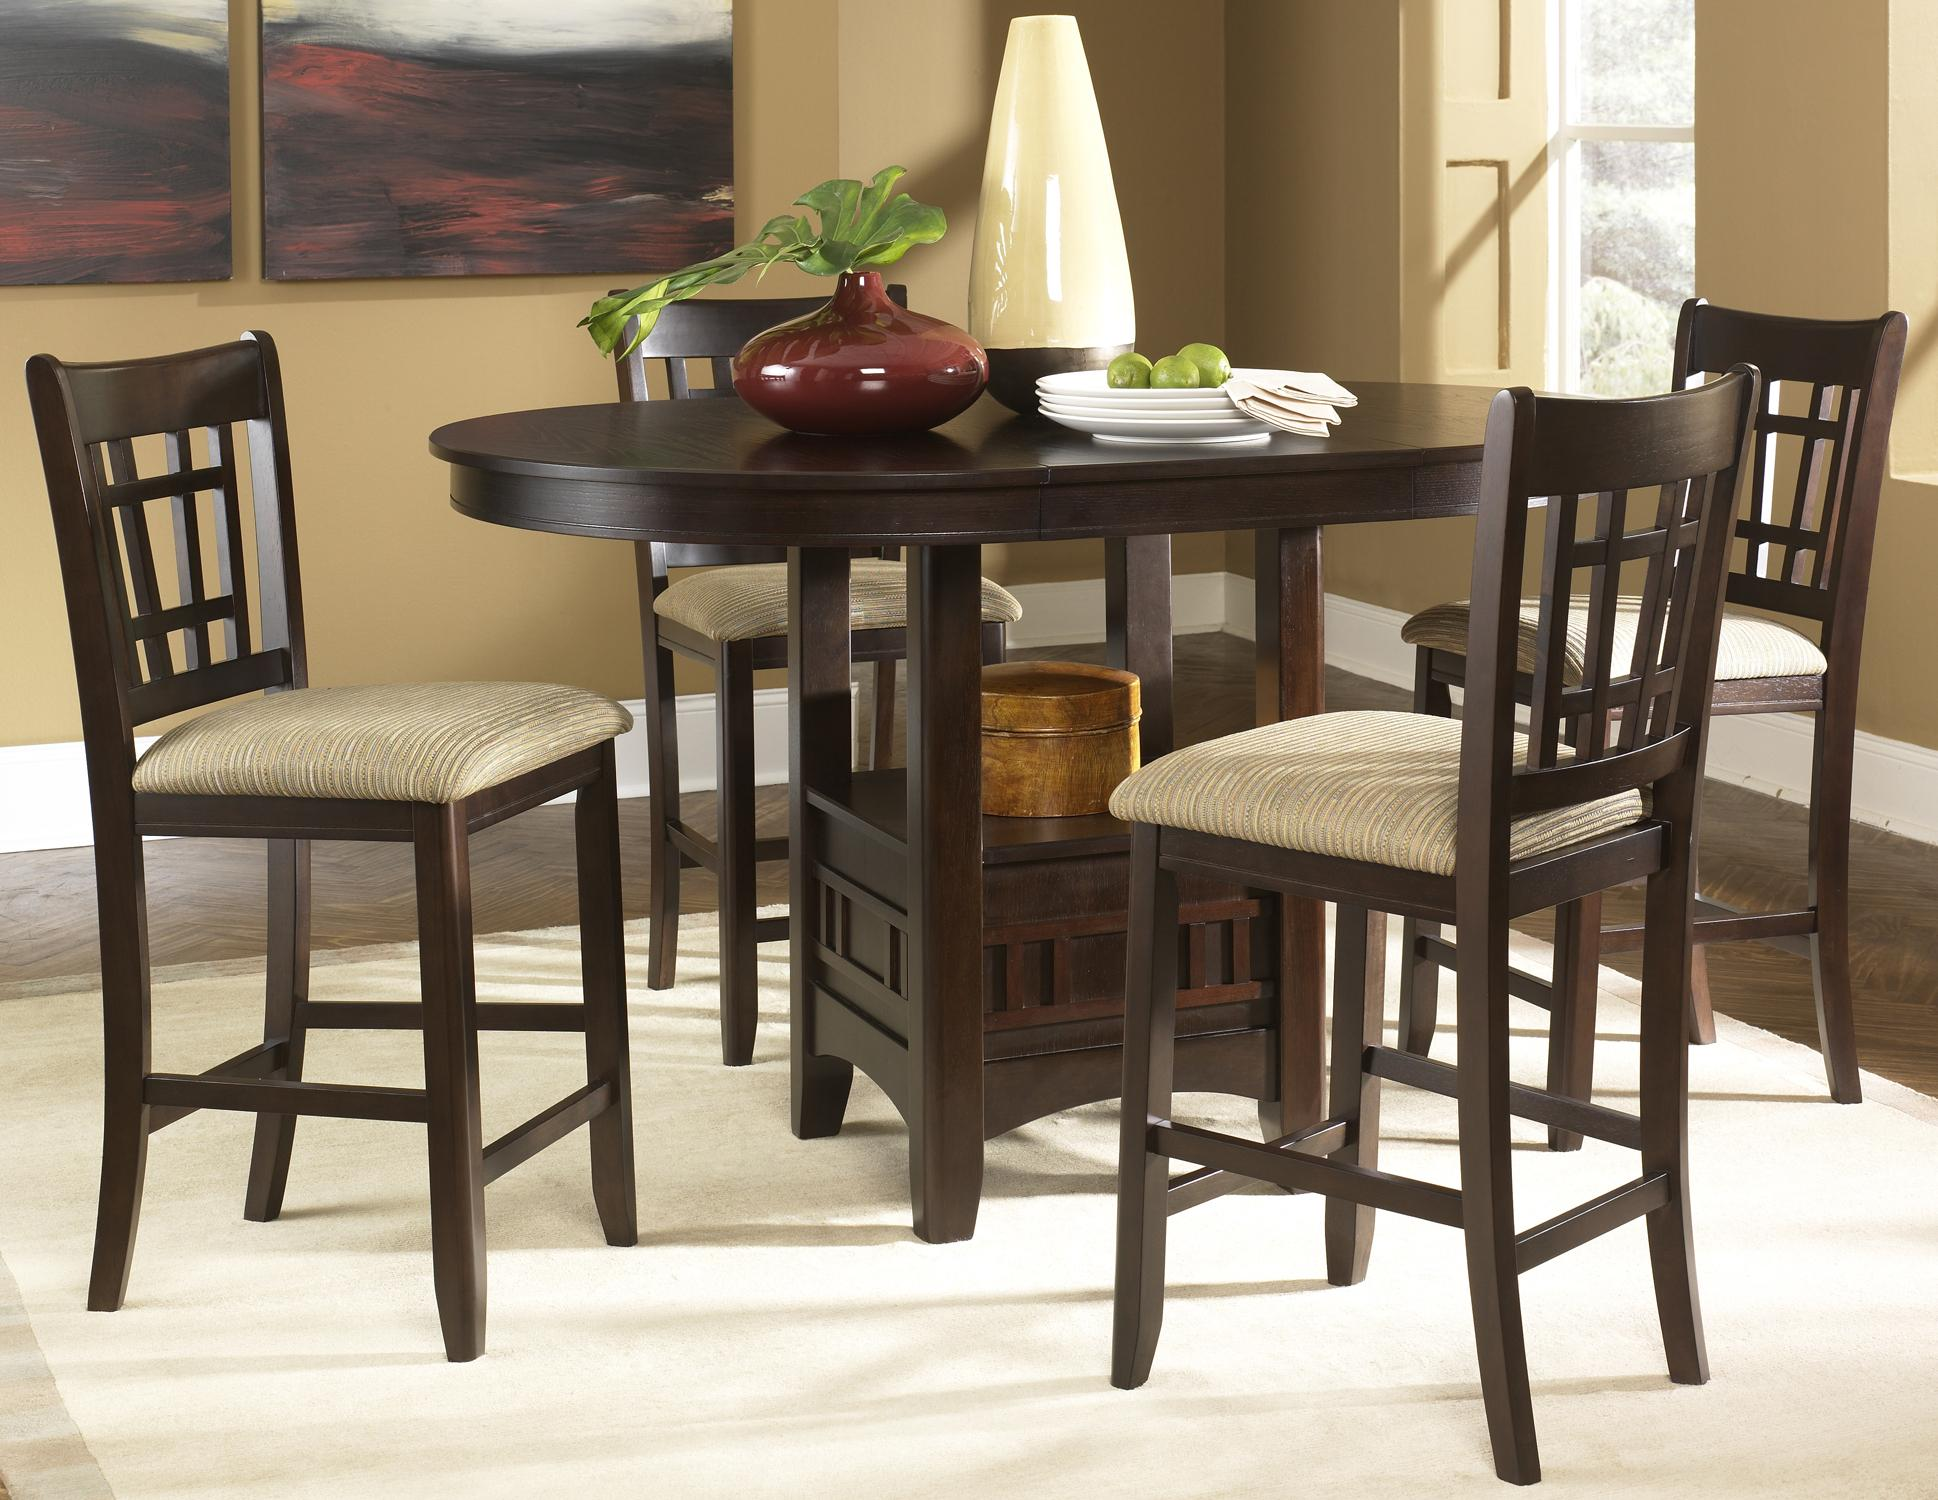 Exceptional Oval Pub Table U0026 24 Inch Upholstered Bar Stool Set